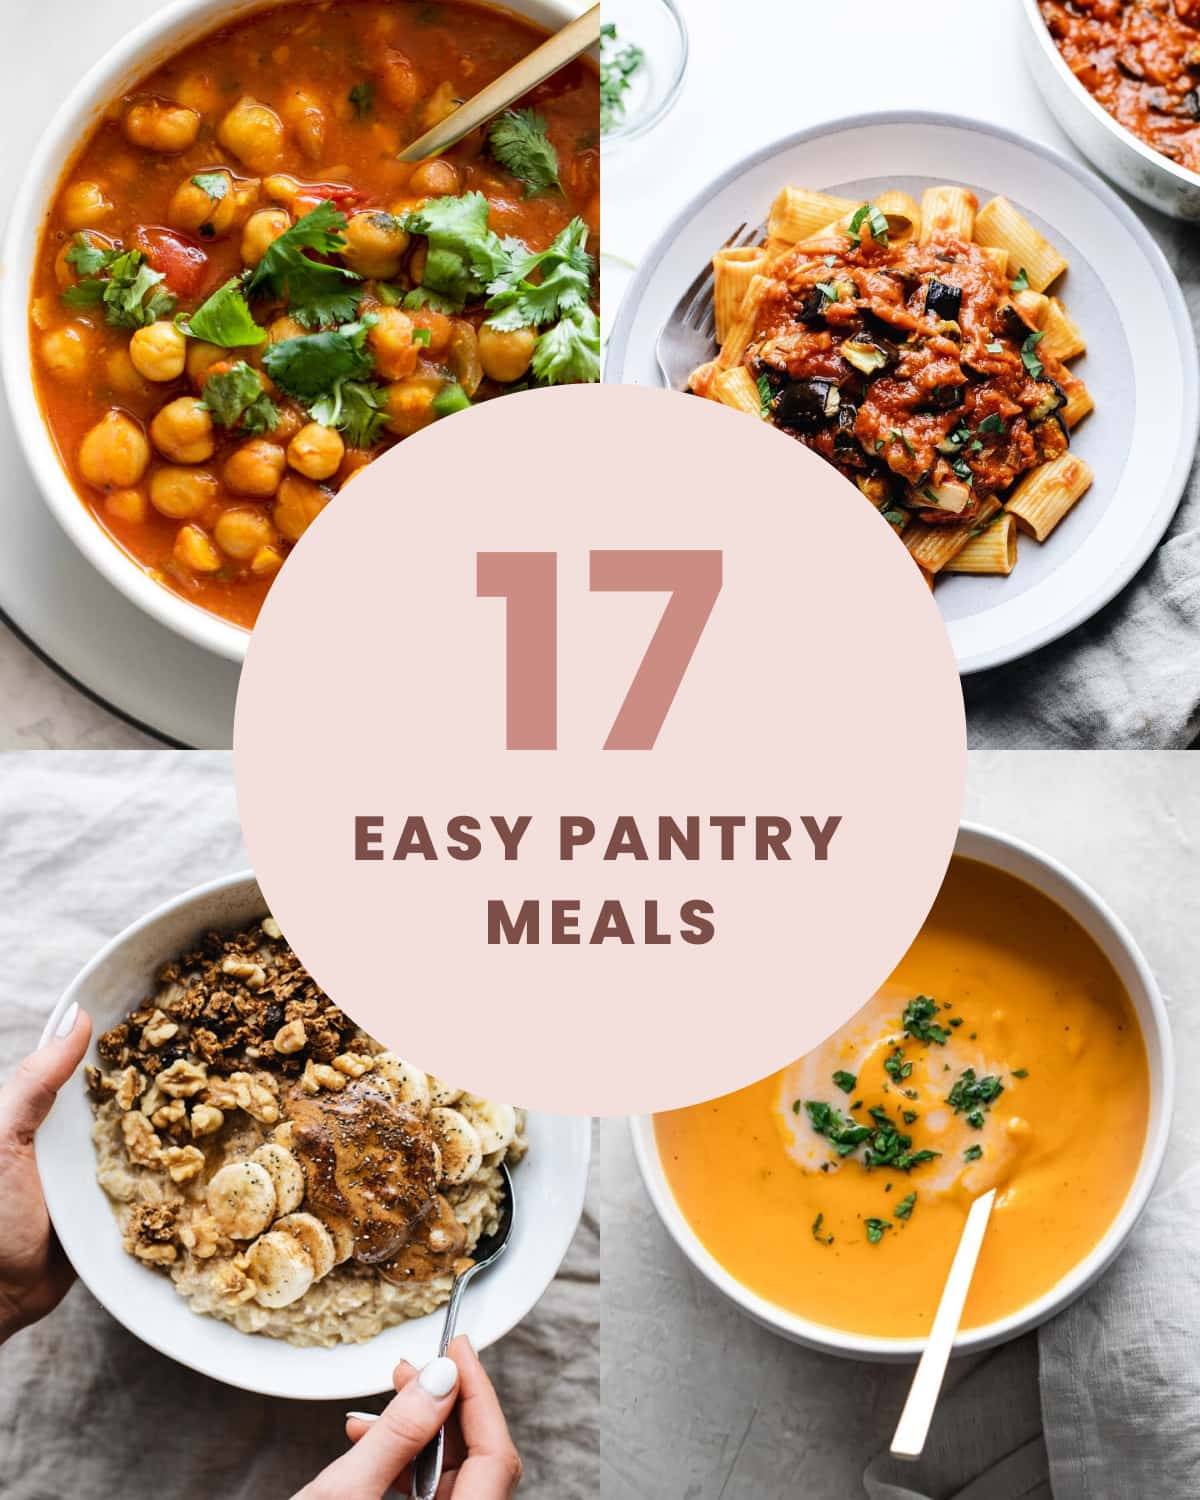 17 easy pantry meals